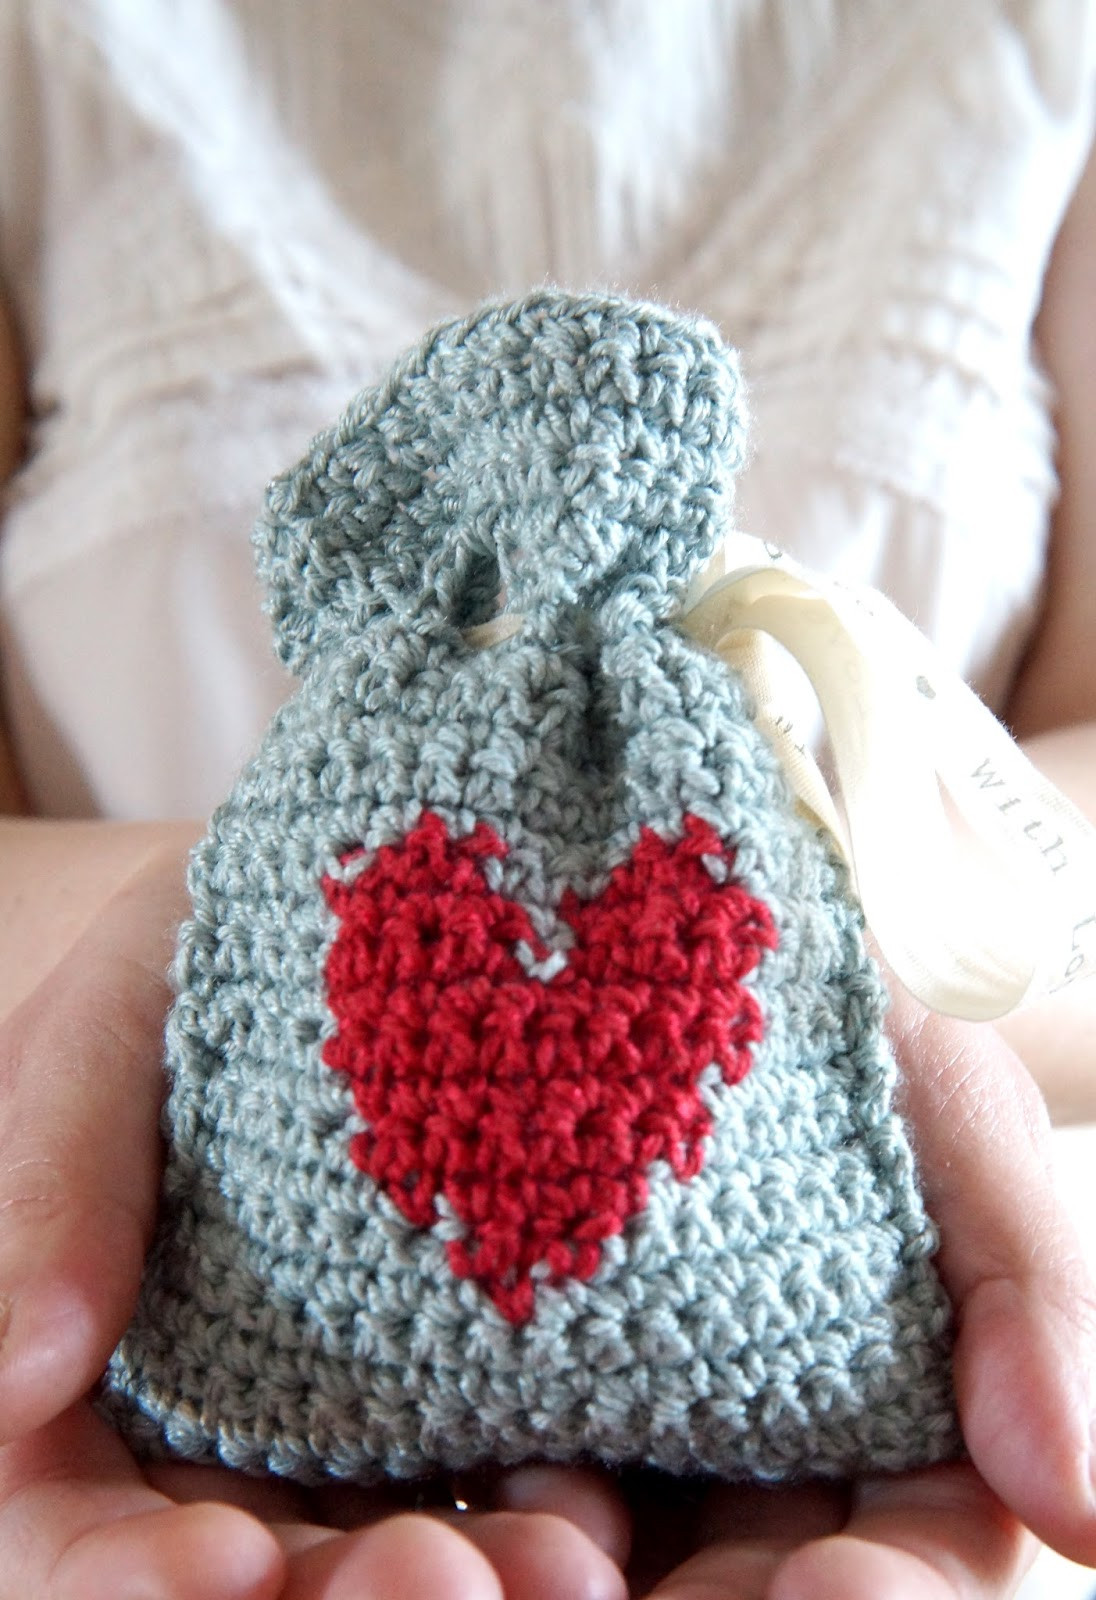 Crochet Design Awesome Crochet Hearts Free Patterns for Valentine S Day Of Marvelous 40 Models Crochet Design